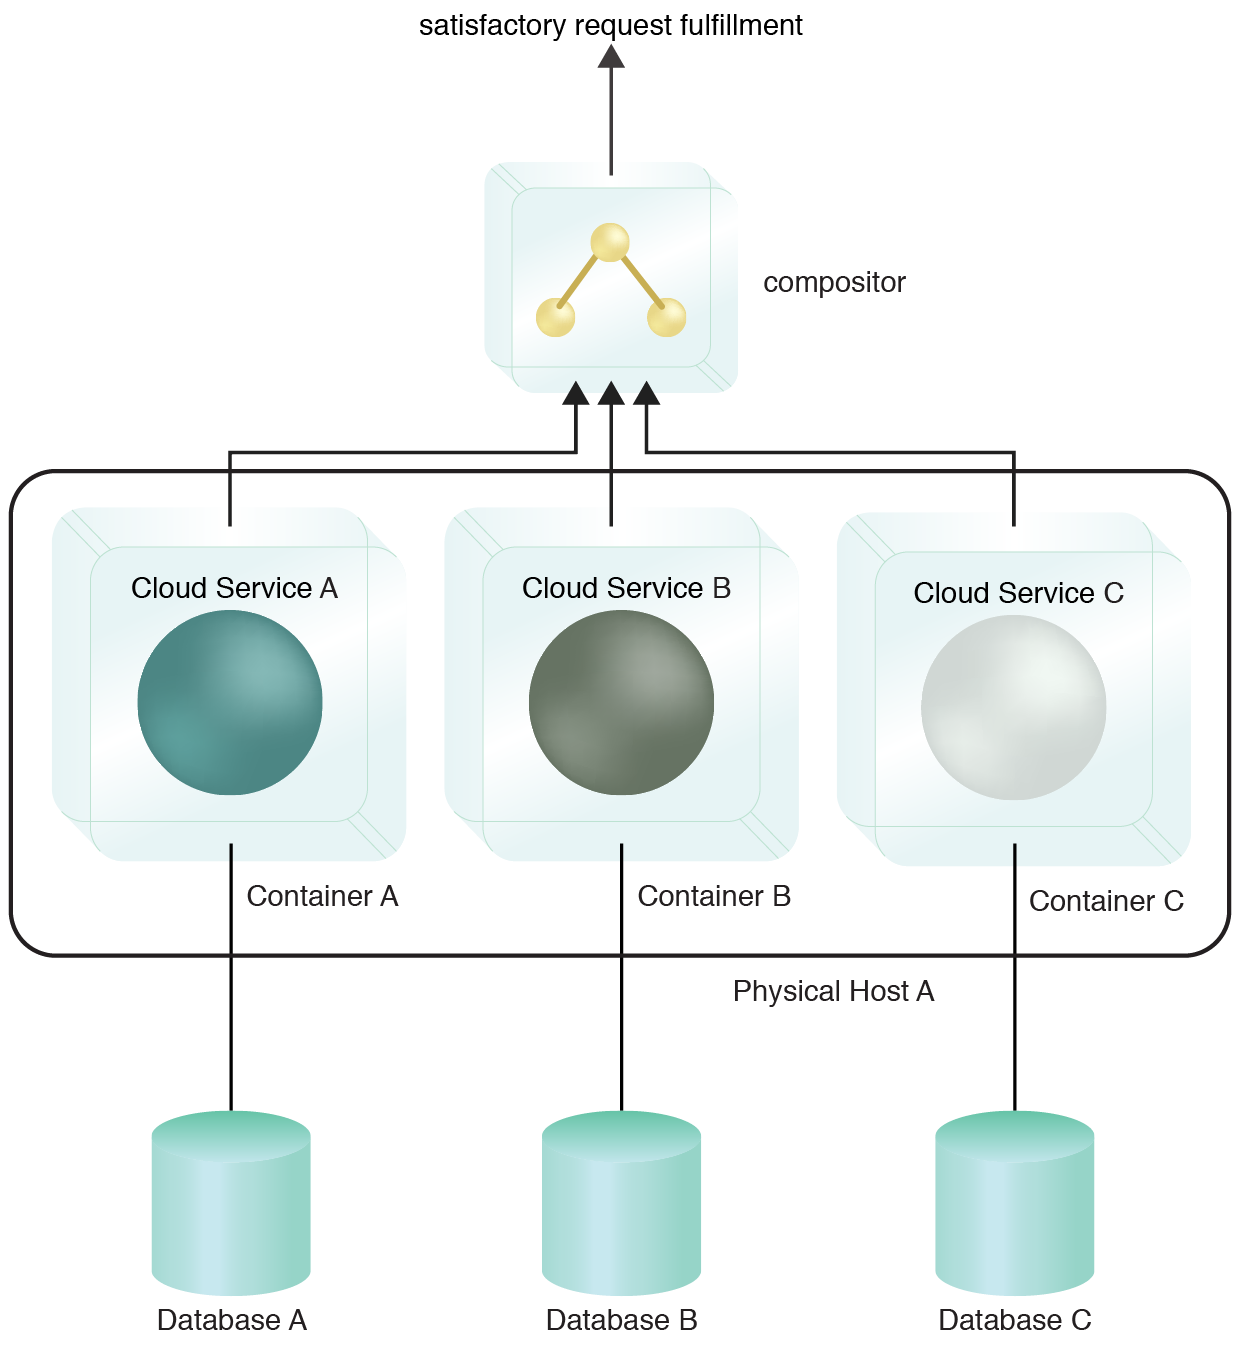 Single Node Multi-Containers: The cloud services deployed in isolated containers on the same physical host. The underlying host can optionally be a virtual server.